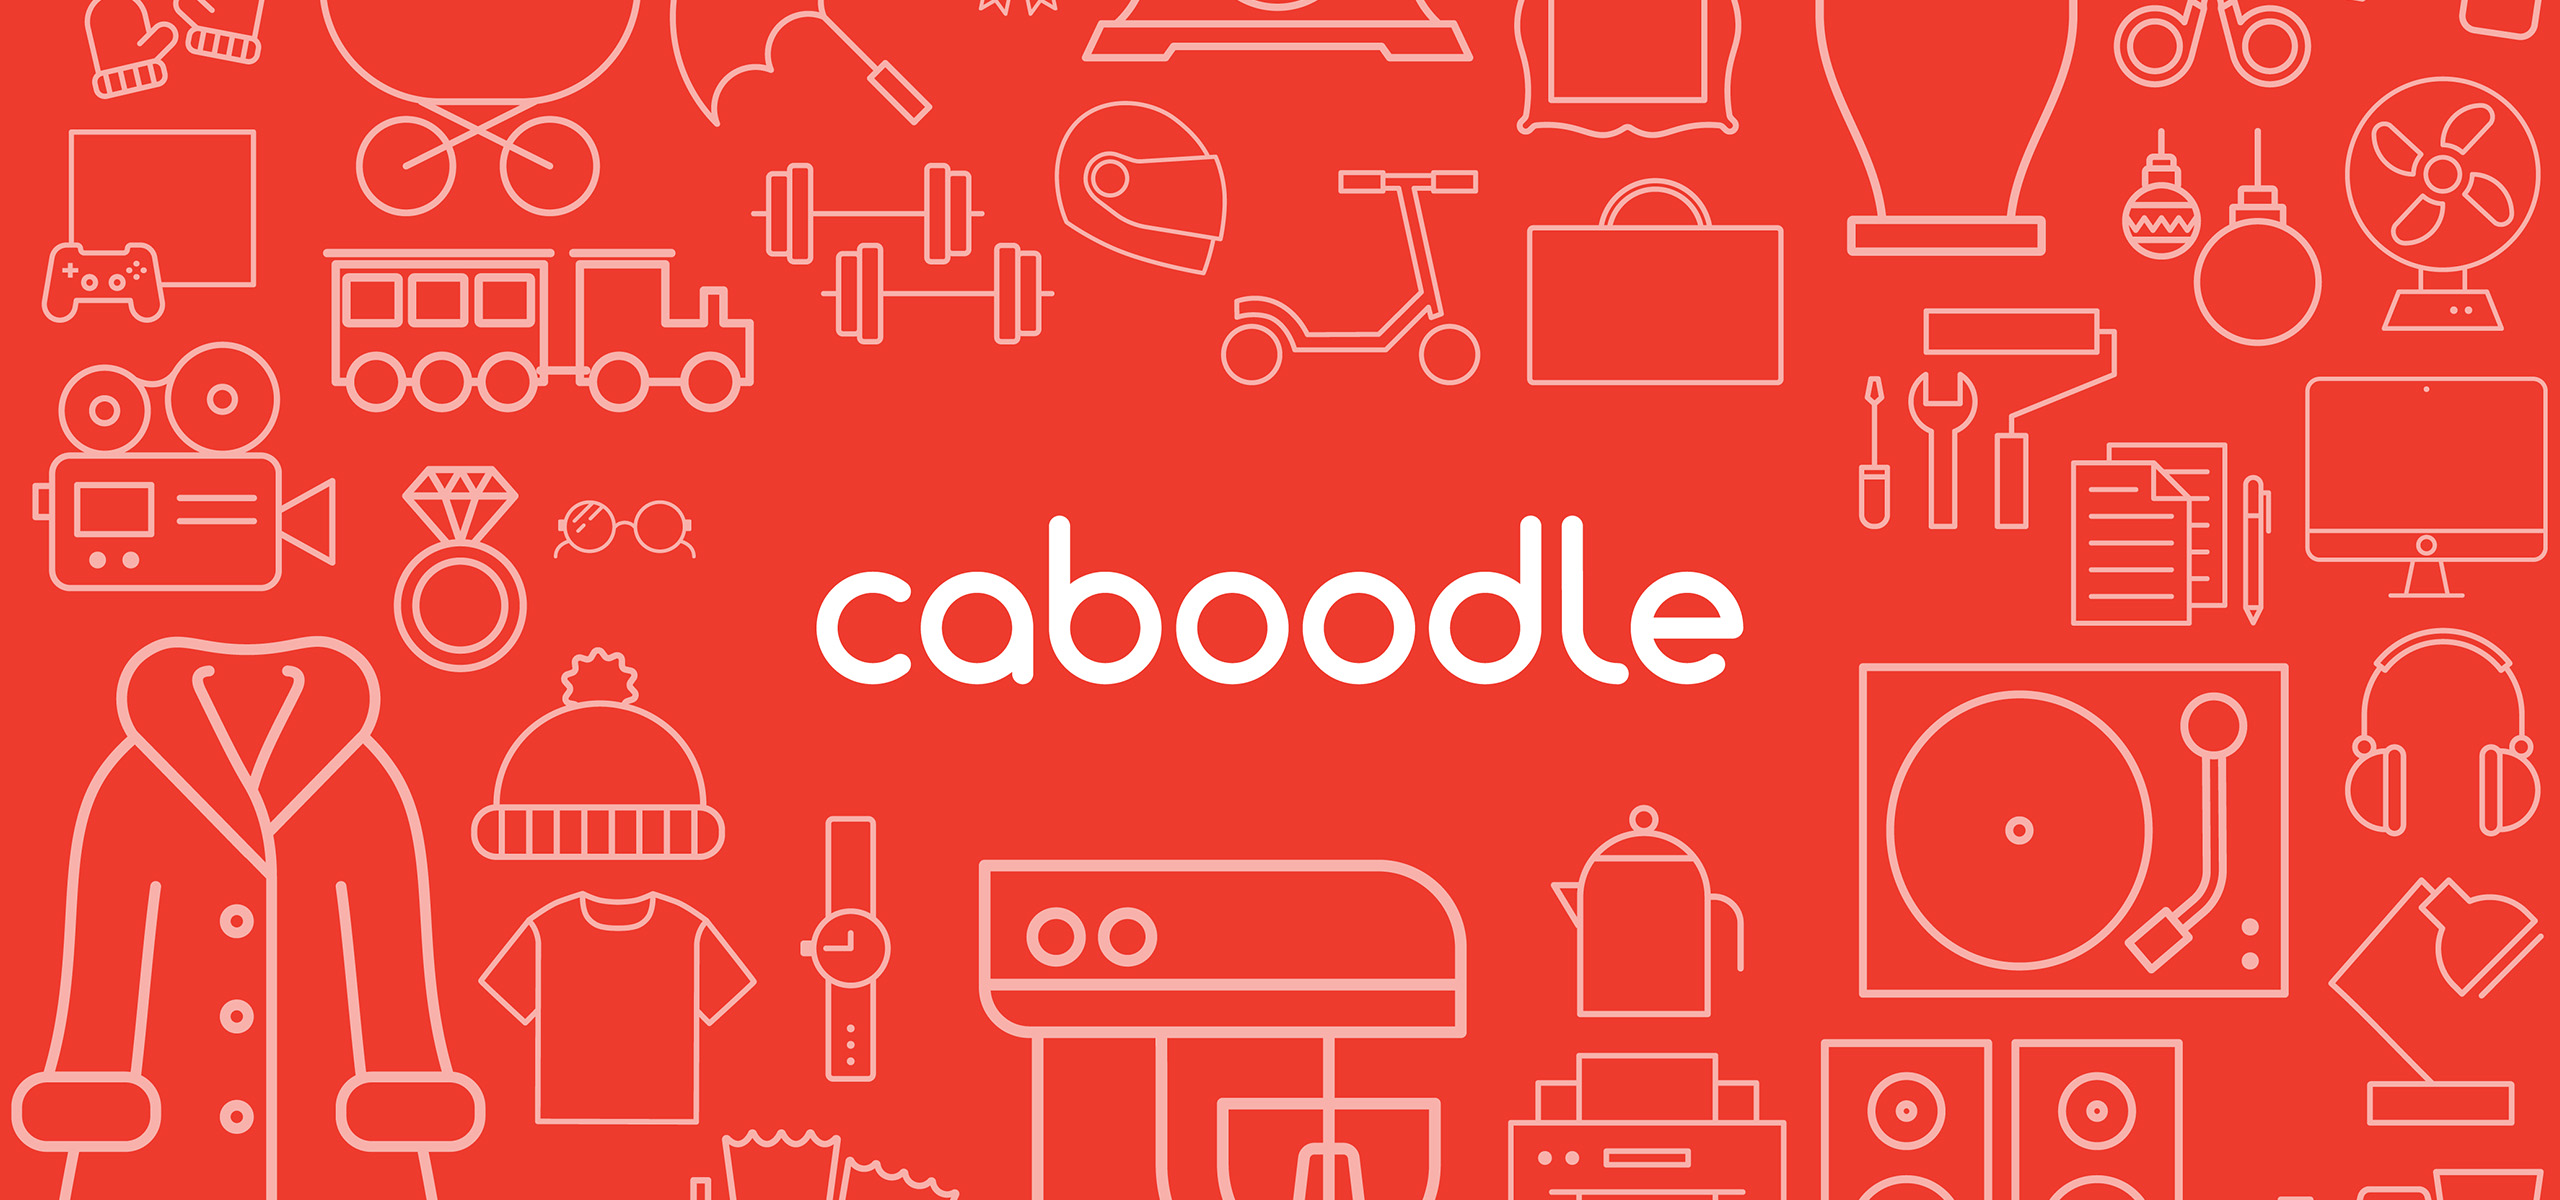 Logo with bespoke illustrations for new startup brand Caboodle, designed by White Bear Studio